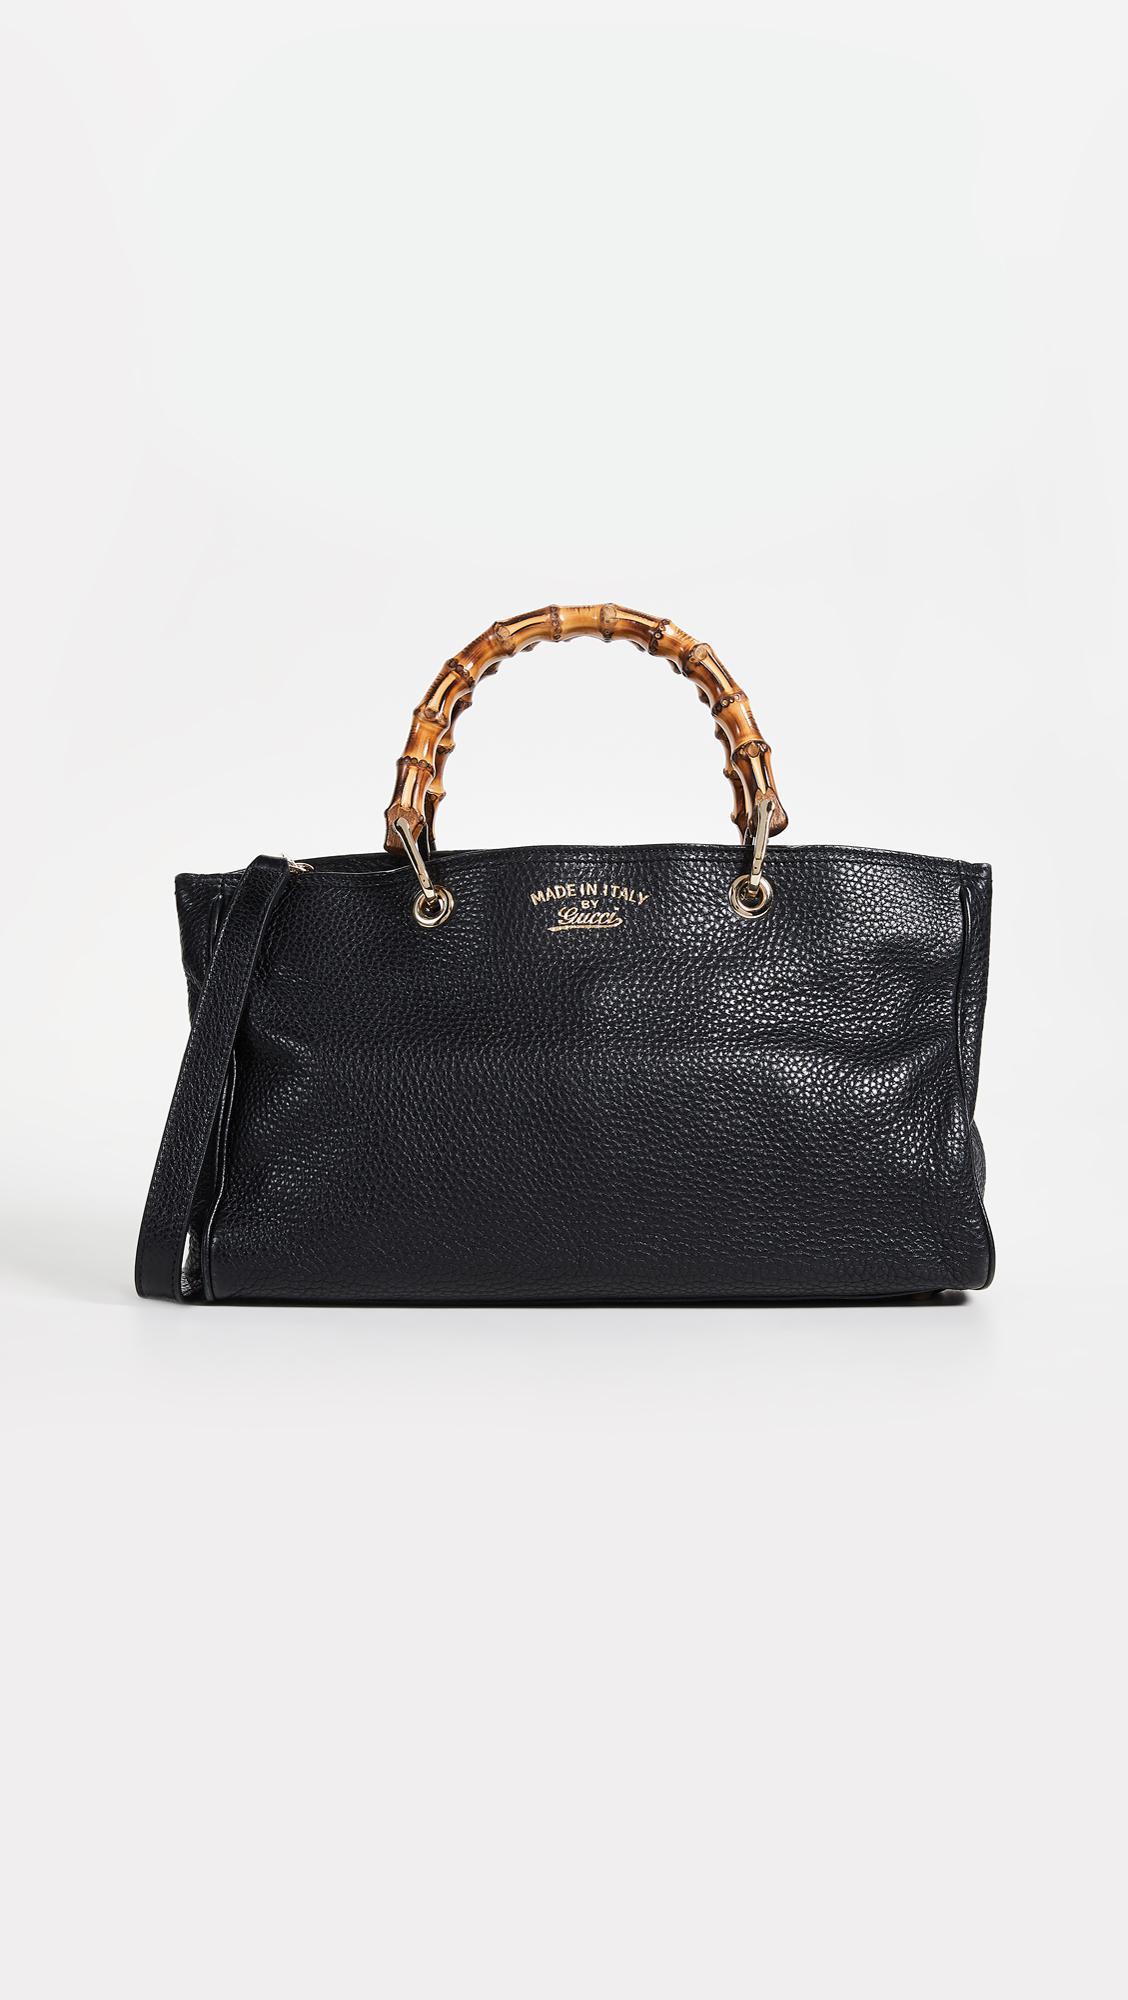 18085ce9f6d Lyst - What Goes Around Comes Around Gucci Bamboo Shopper in Black